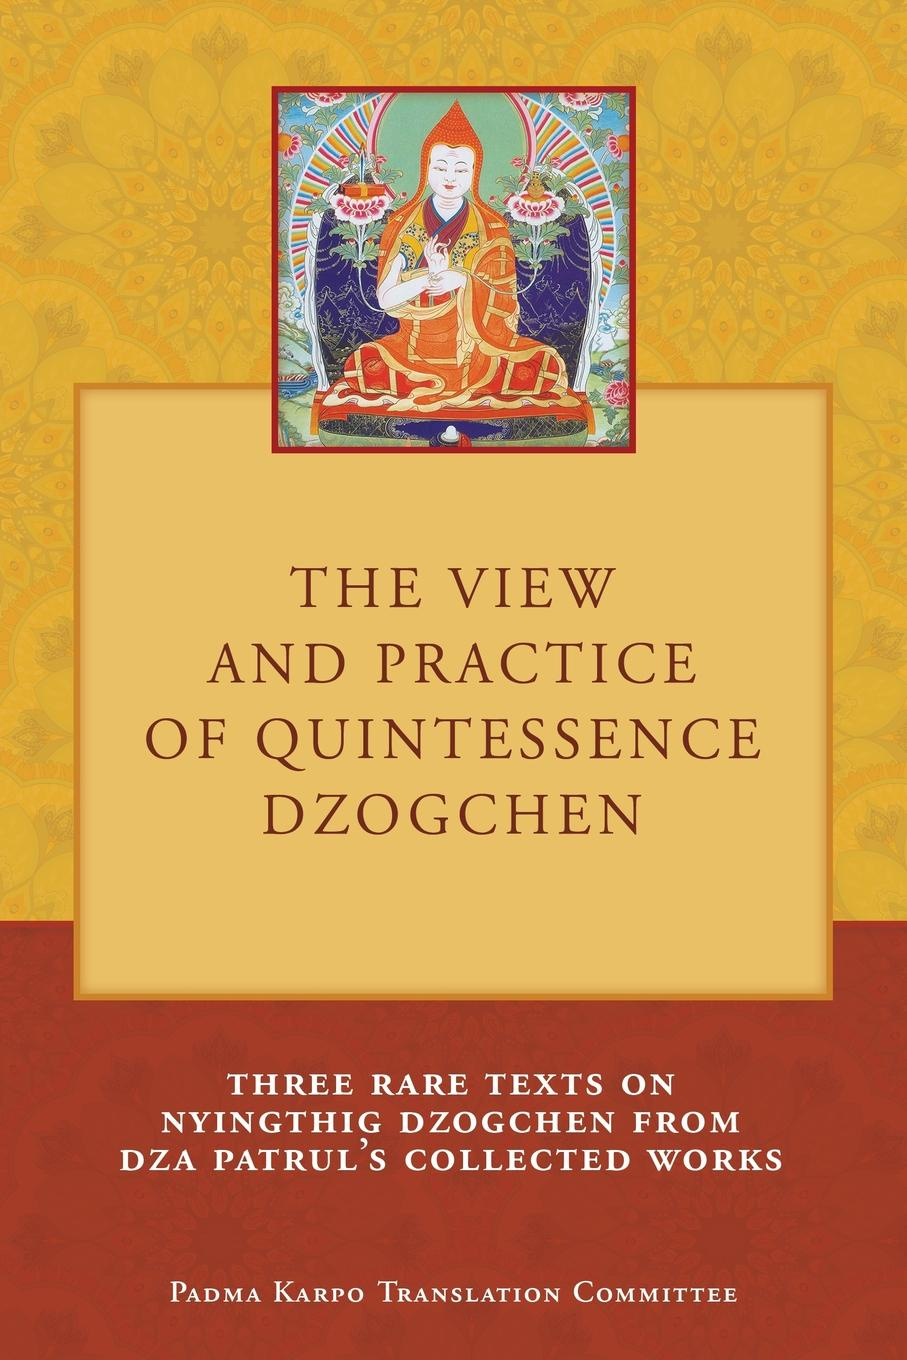 Tony Duff The View and Practice of Quintessence Dzogchen. Three Rare Texts on Nyingthig Dzogchen from Dza Patruls Collected Works